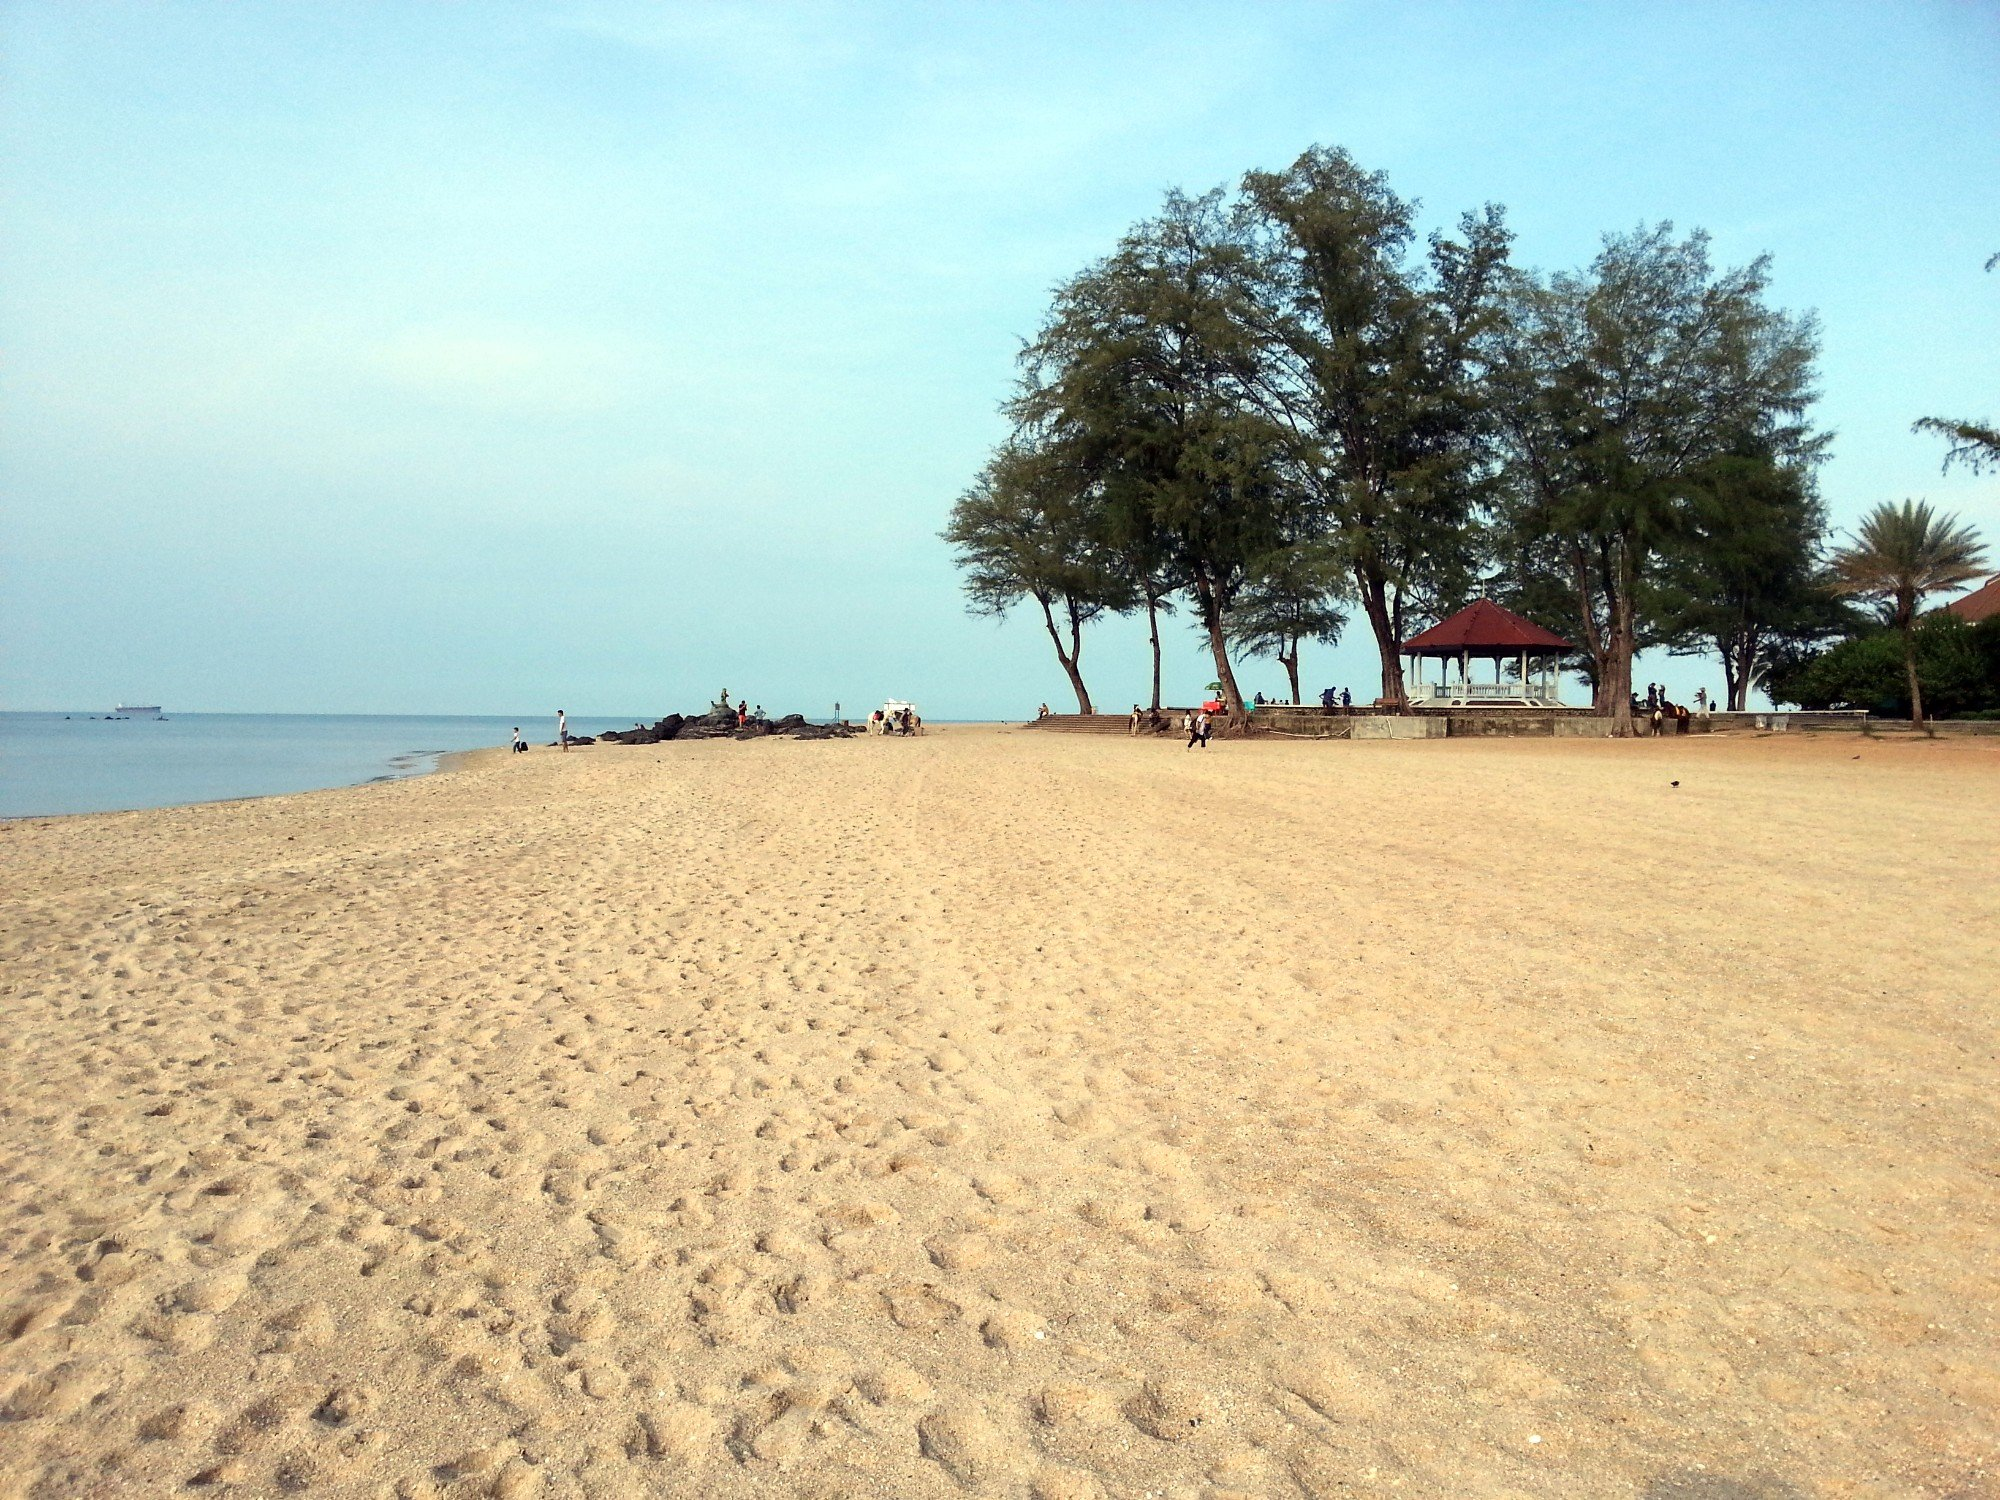 Looking east on Samila Beach